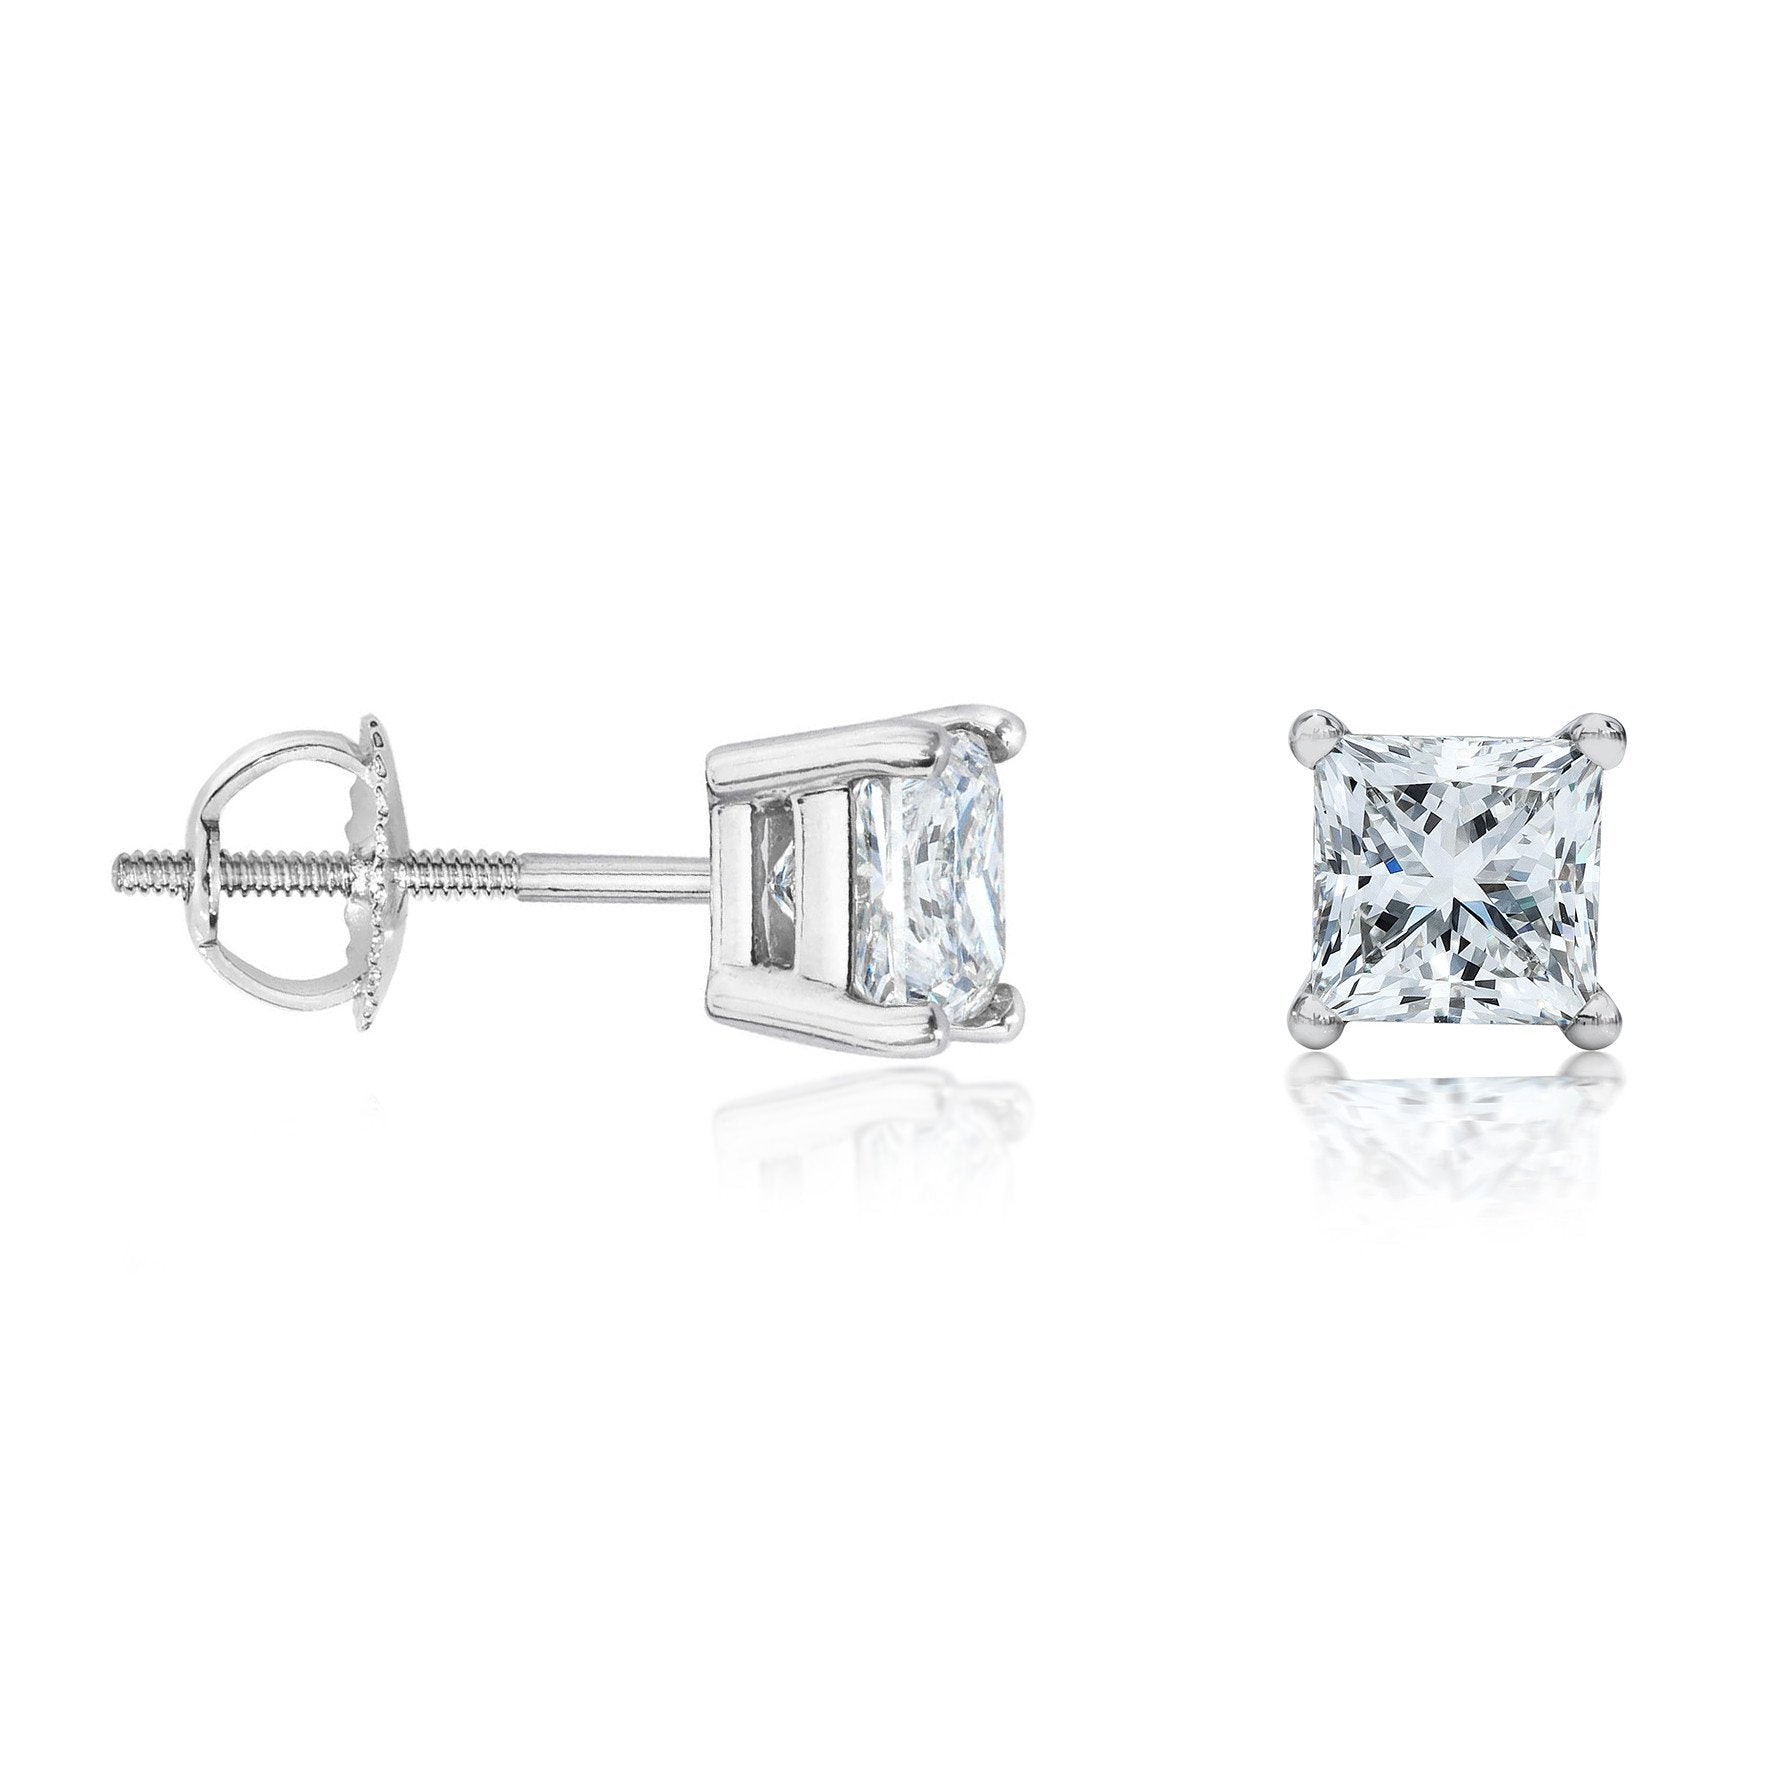 of new jewelry front earrings jackson products small hole square diamond copy three cut company arrivals collections stud